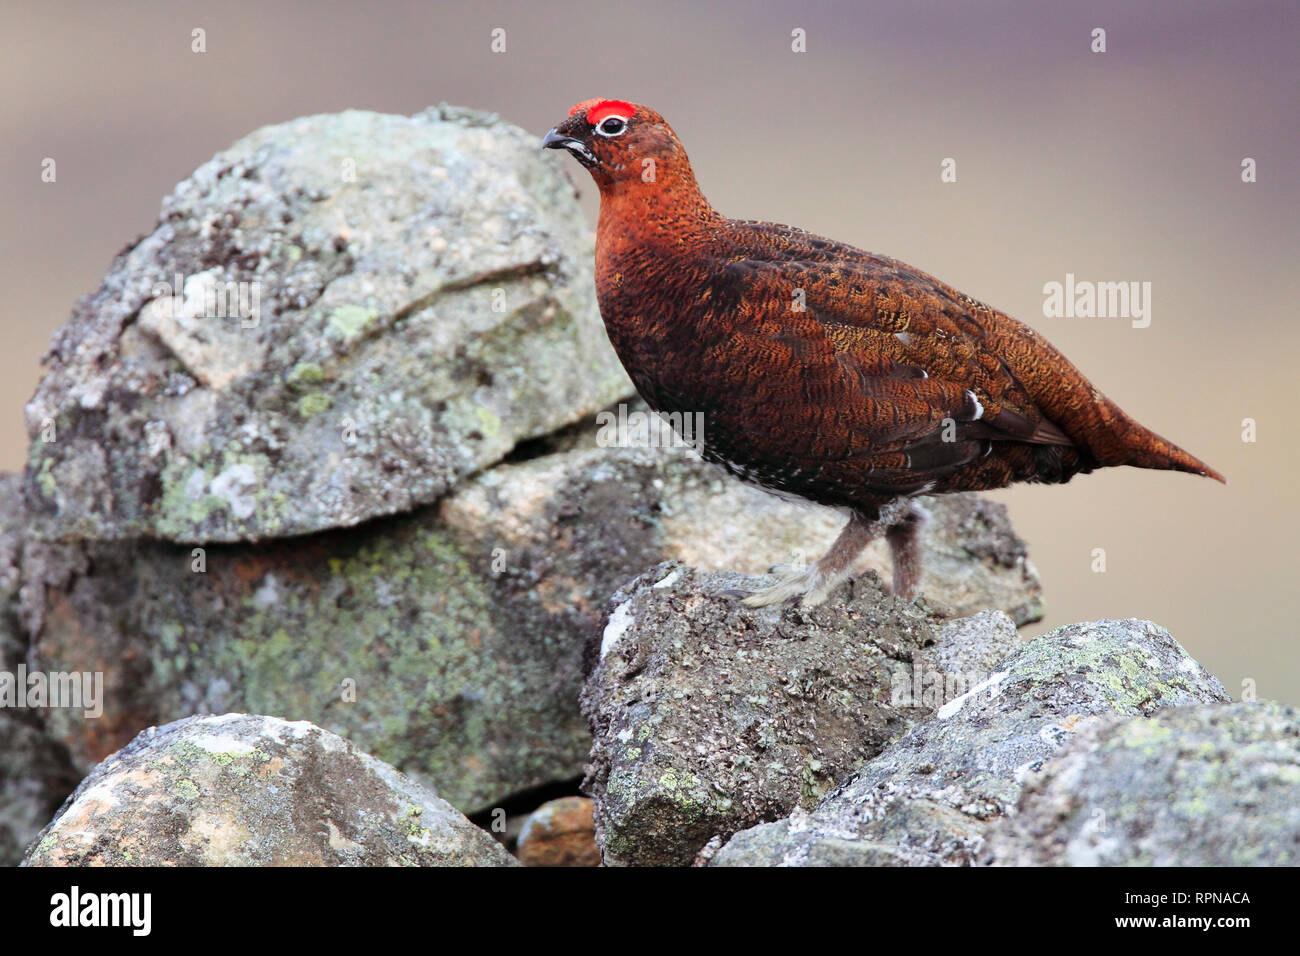 zoology / animals, birds (Aves), Willow Grouse, schottische Willow Grouse, Lagopus Lagopus scoticus, R, Additional-Rights-Clearance-Info-Not-Available - Stock Image